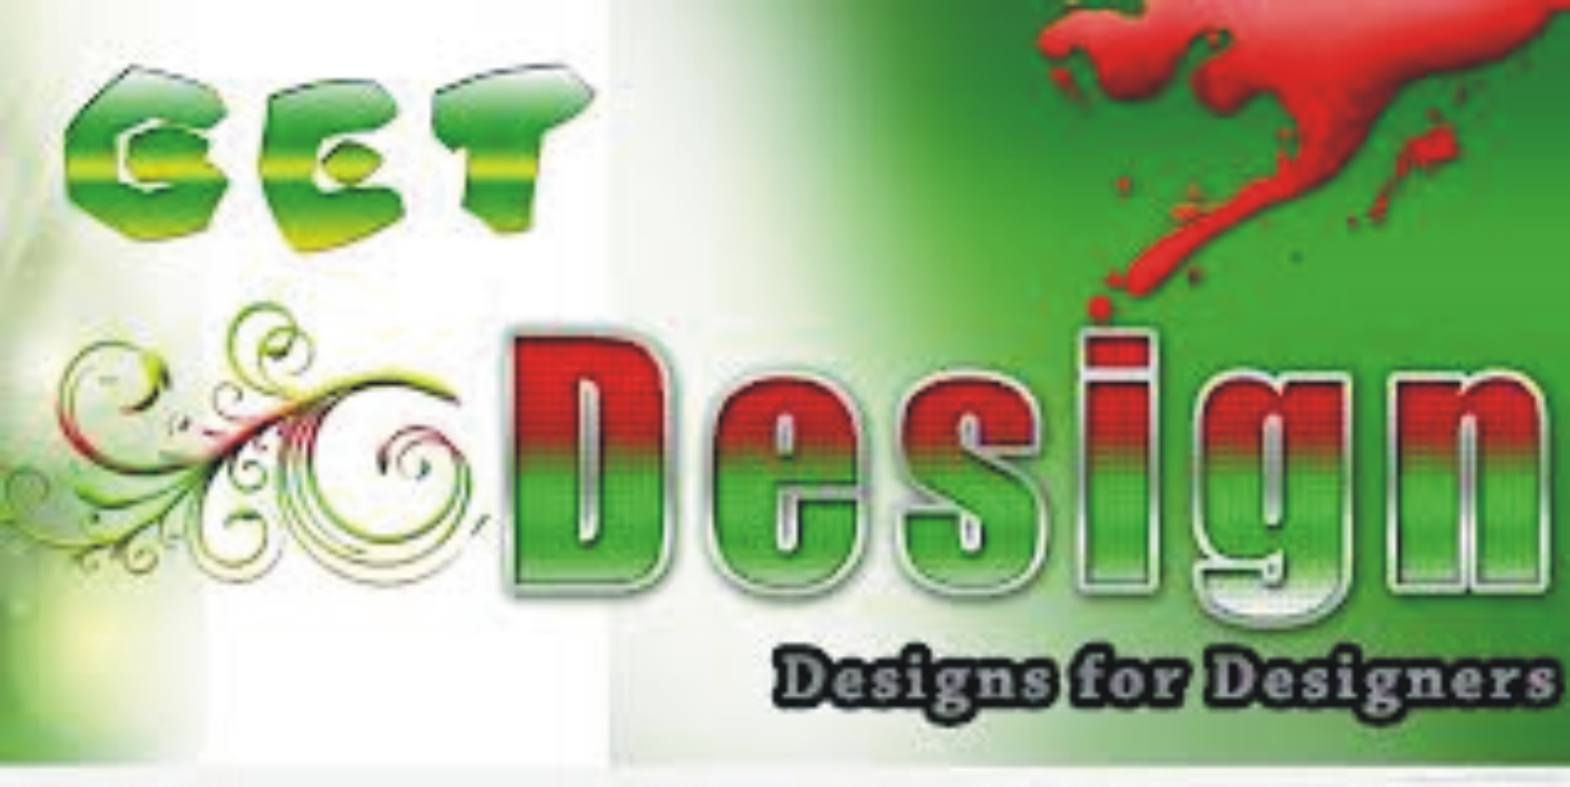 I will design amazing BANNERS and HEADERS